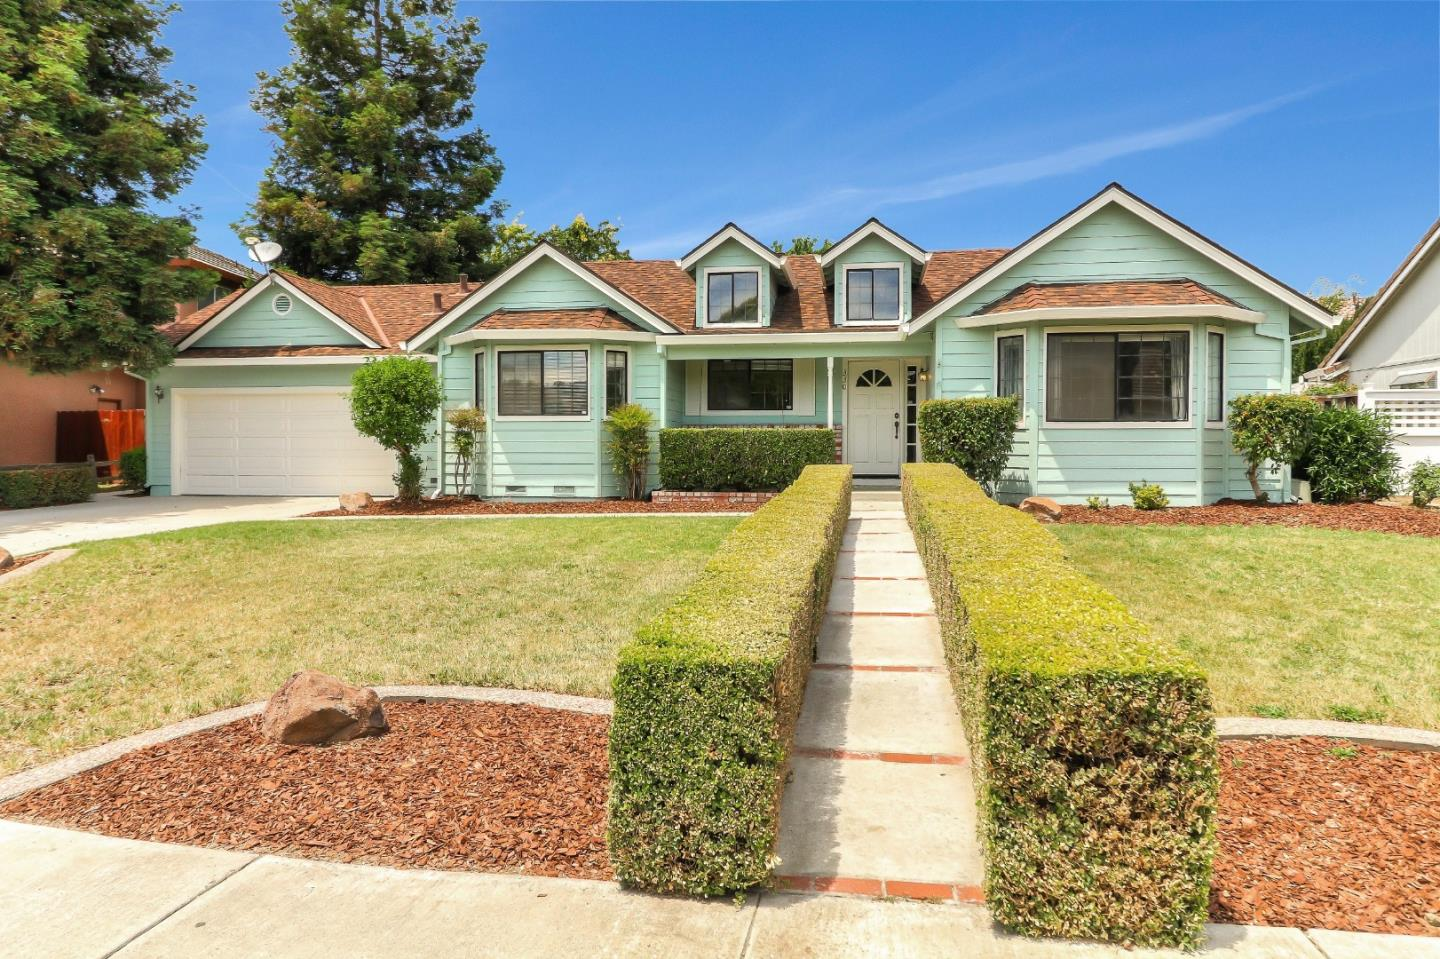 Detail Gallery Image 1 of 1 For 330 Tina Dr, Hollister,  CA 95023 - 4 Beds | 2/1 Baths